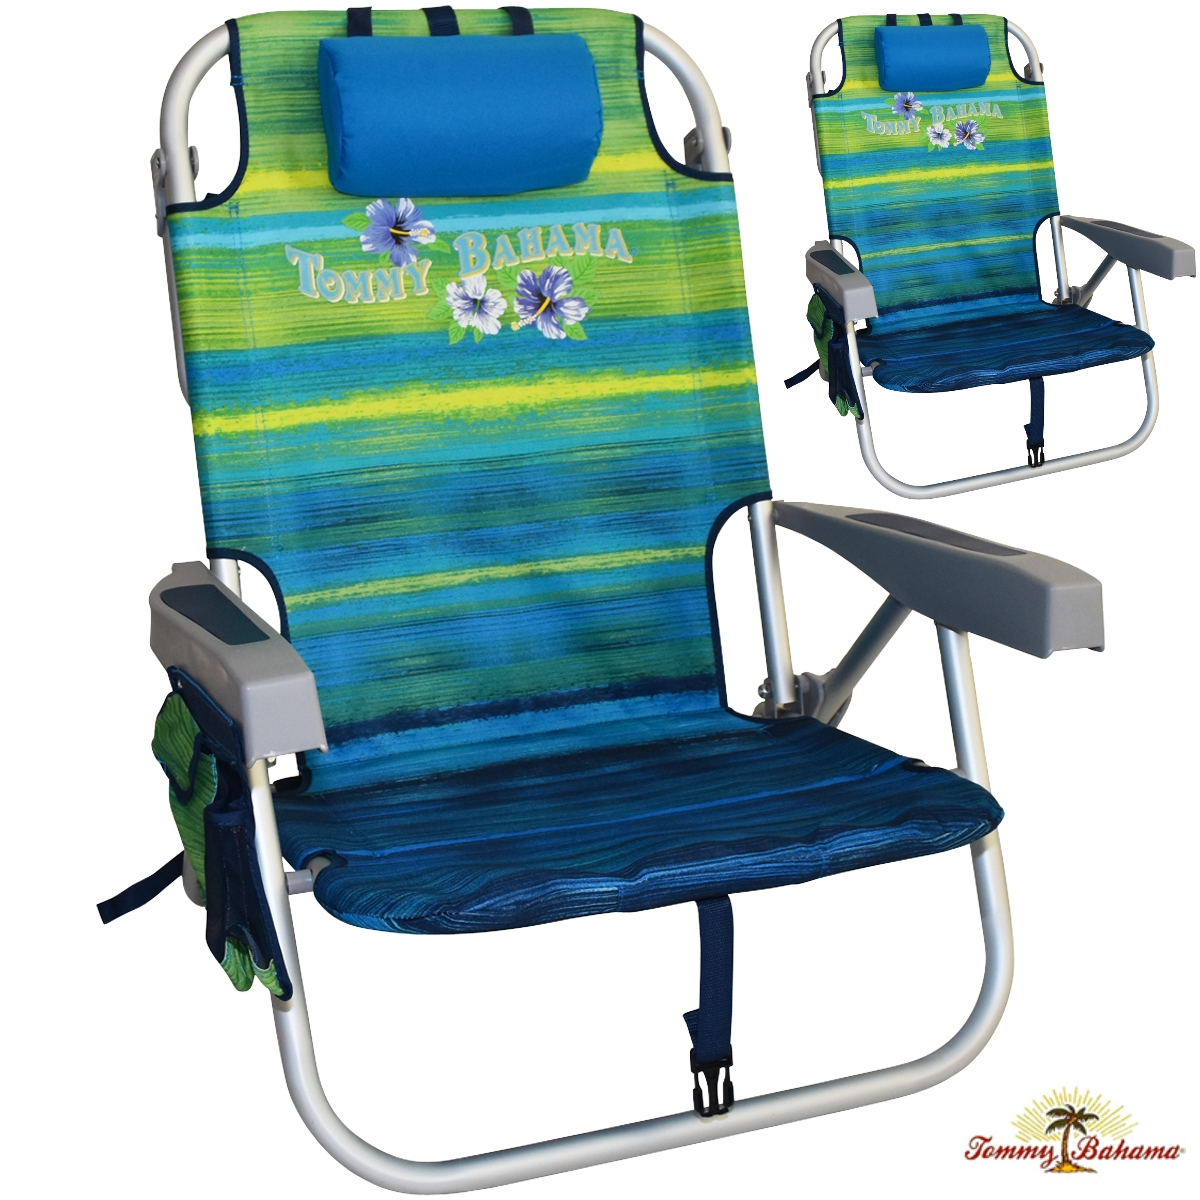 tommy bahama cooler chair banquet covers derry 2 backpack beach chairs with towel bar